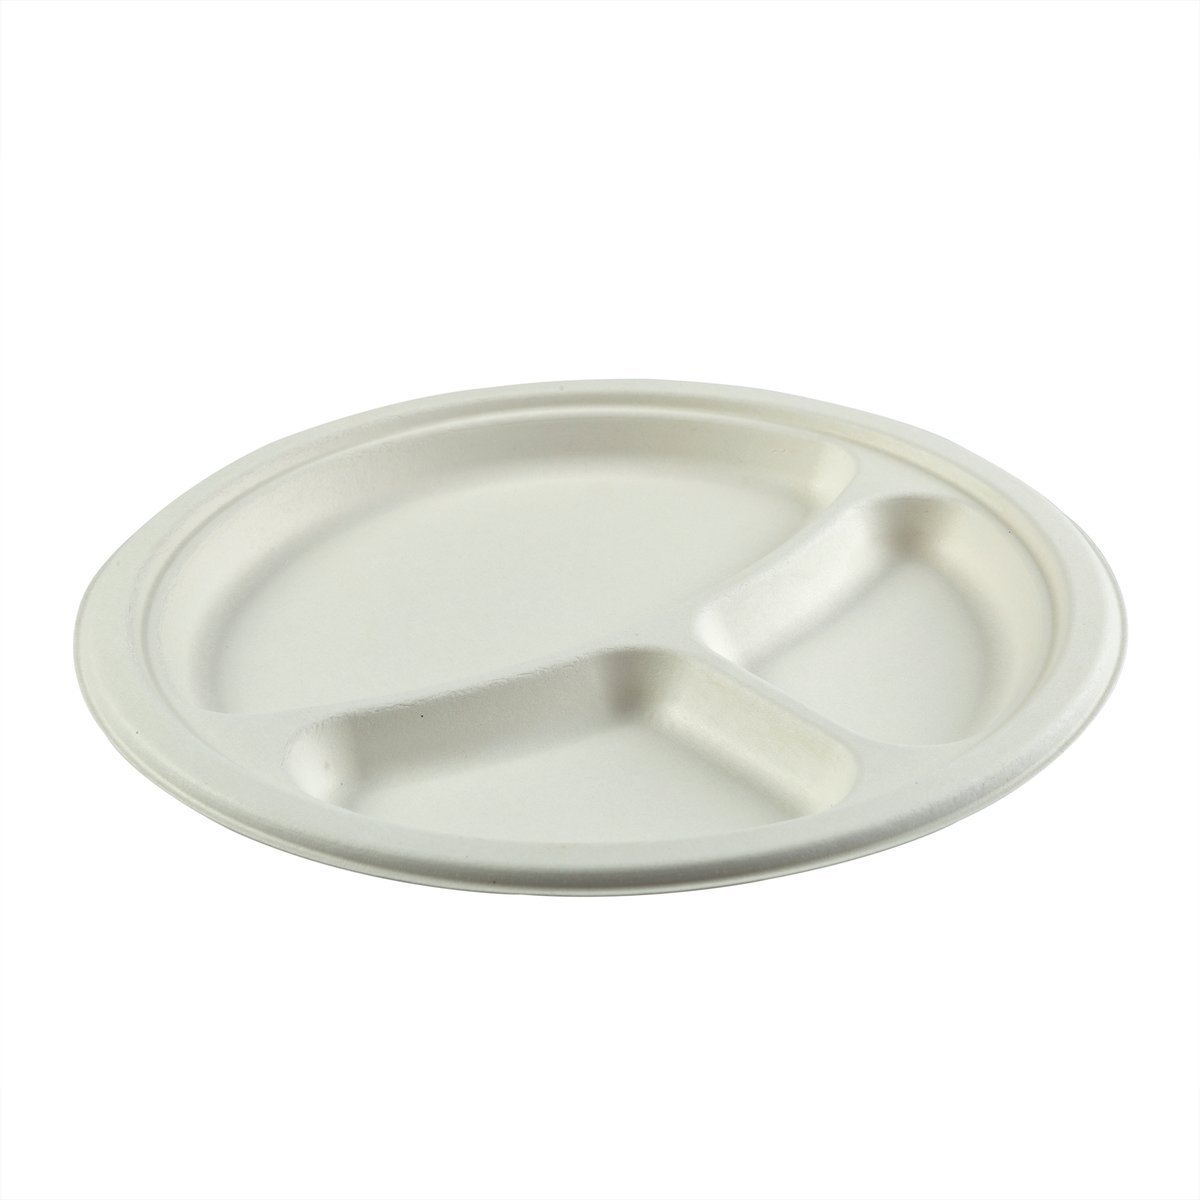 10in 3-Section Round Plate Dinnerware - Bagasse Primeware